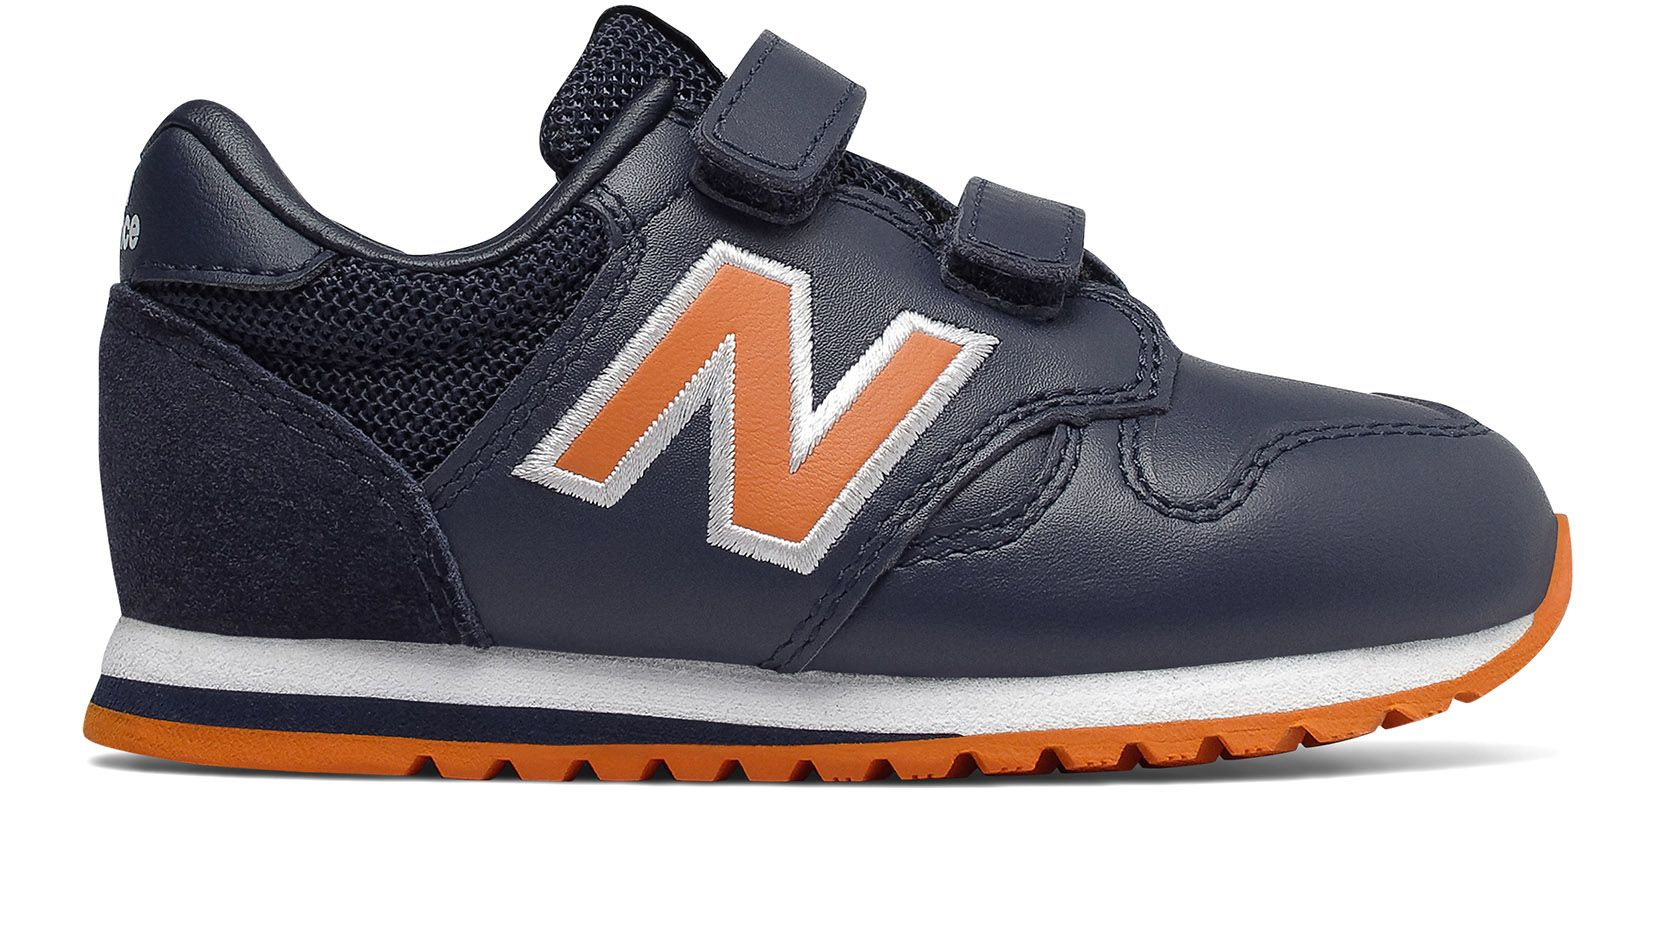 New Balance 520 Hook and Loop